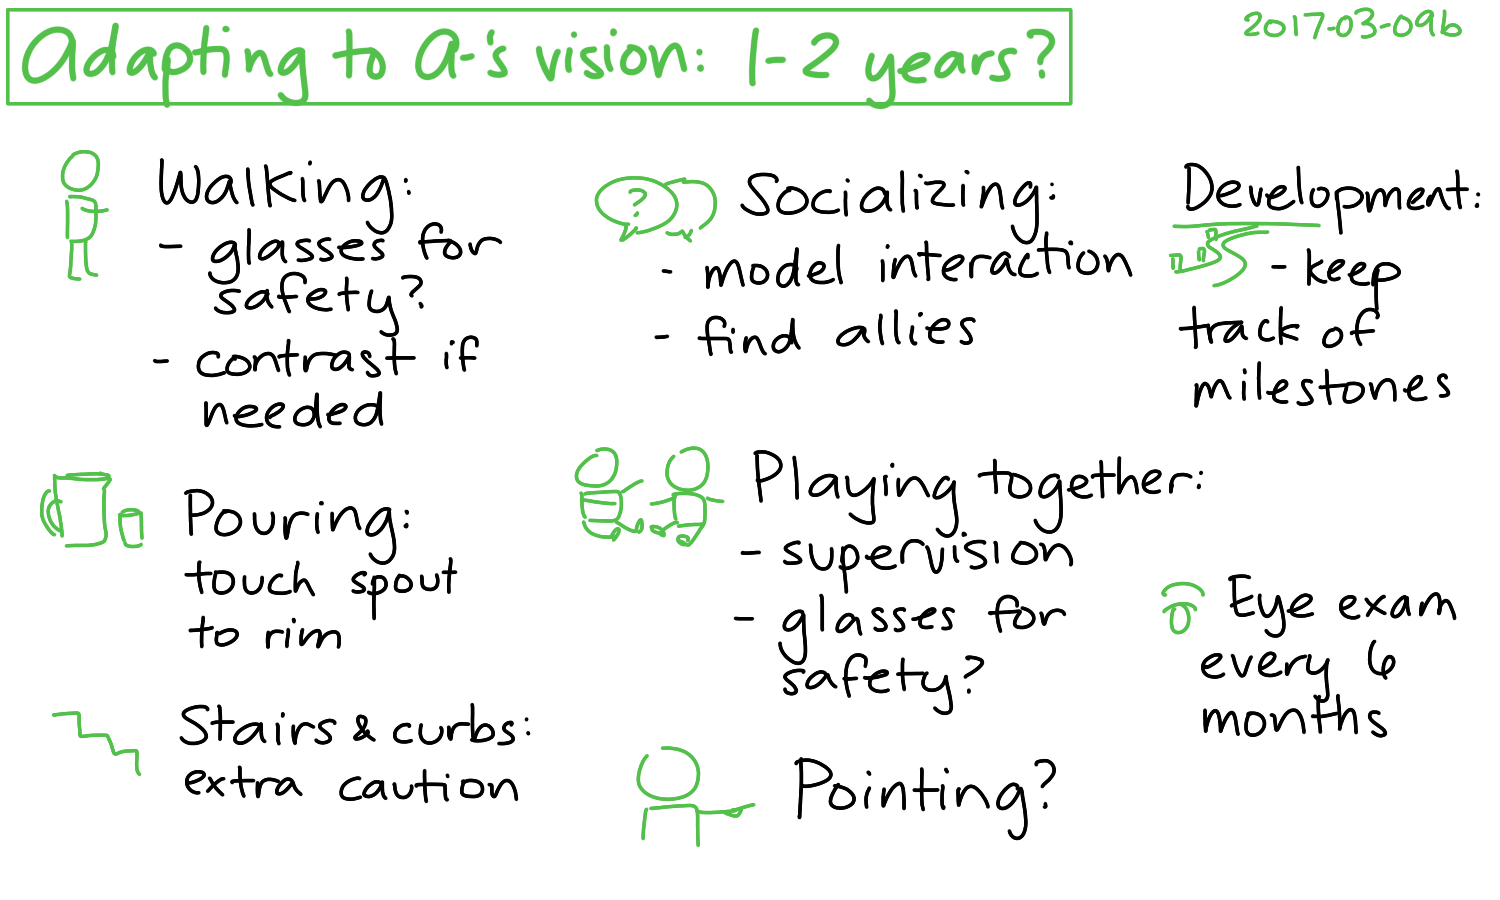 2017-03-09b Adapting to A-'s vision - 1-2 years #microphthalmia #vision #monocular #planning.png